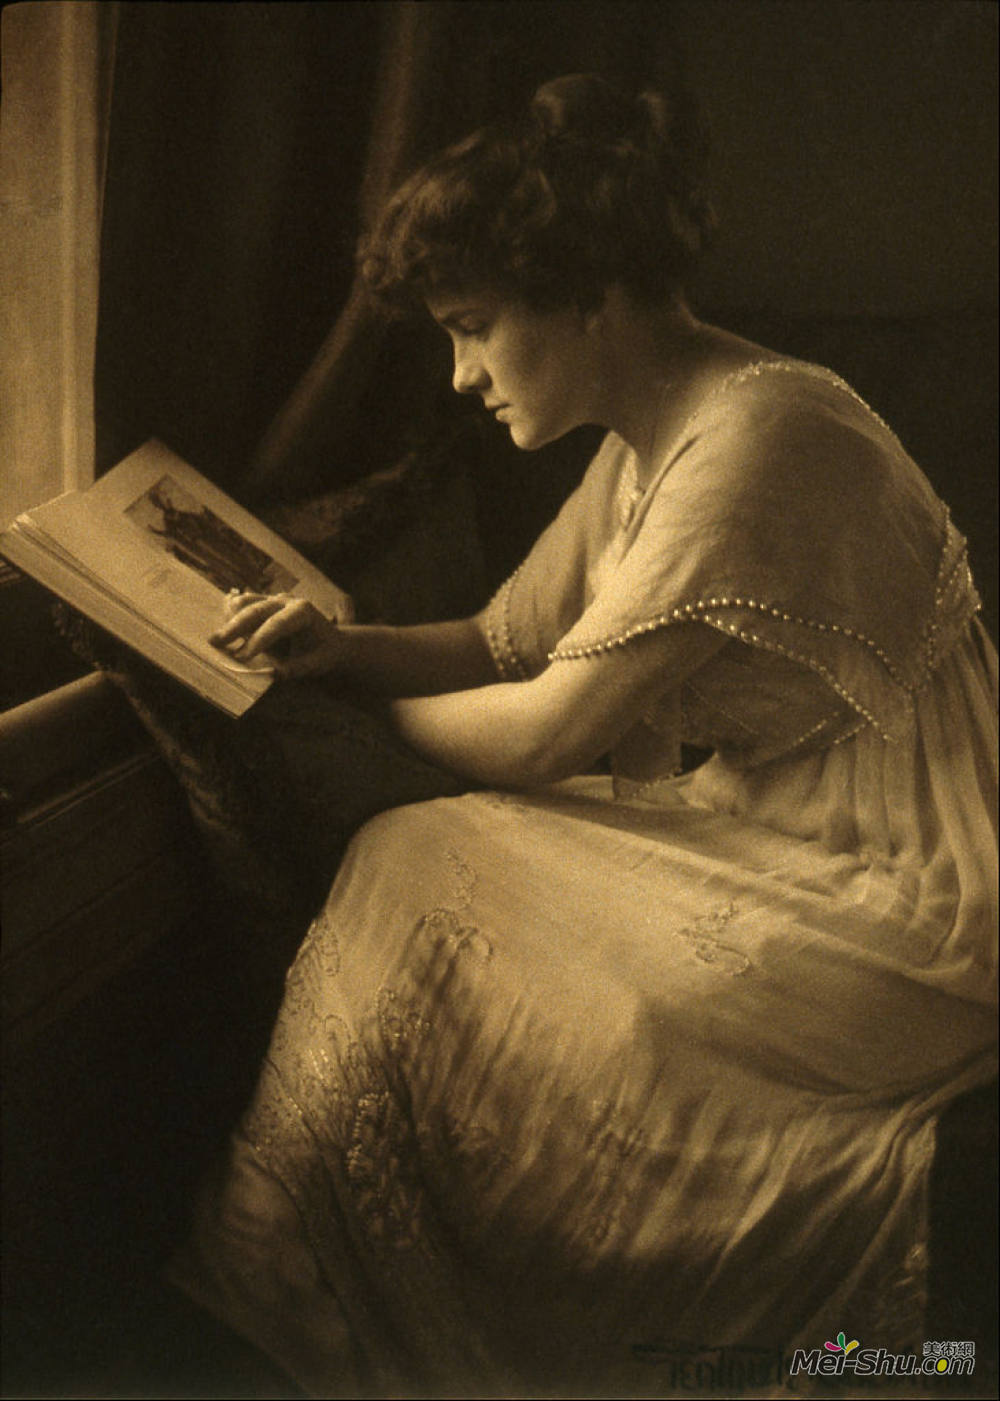 格特鲁德·卡斯比尔(Gertrude Kasebier)高清作品《Portrait of Martine McCulloch》